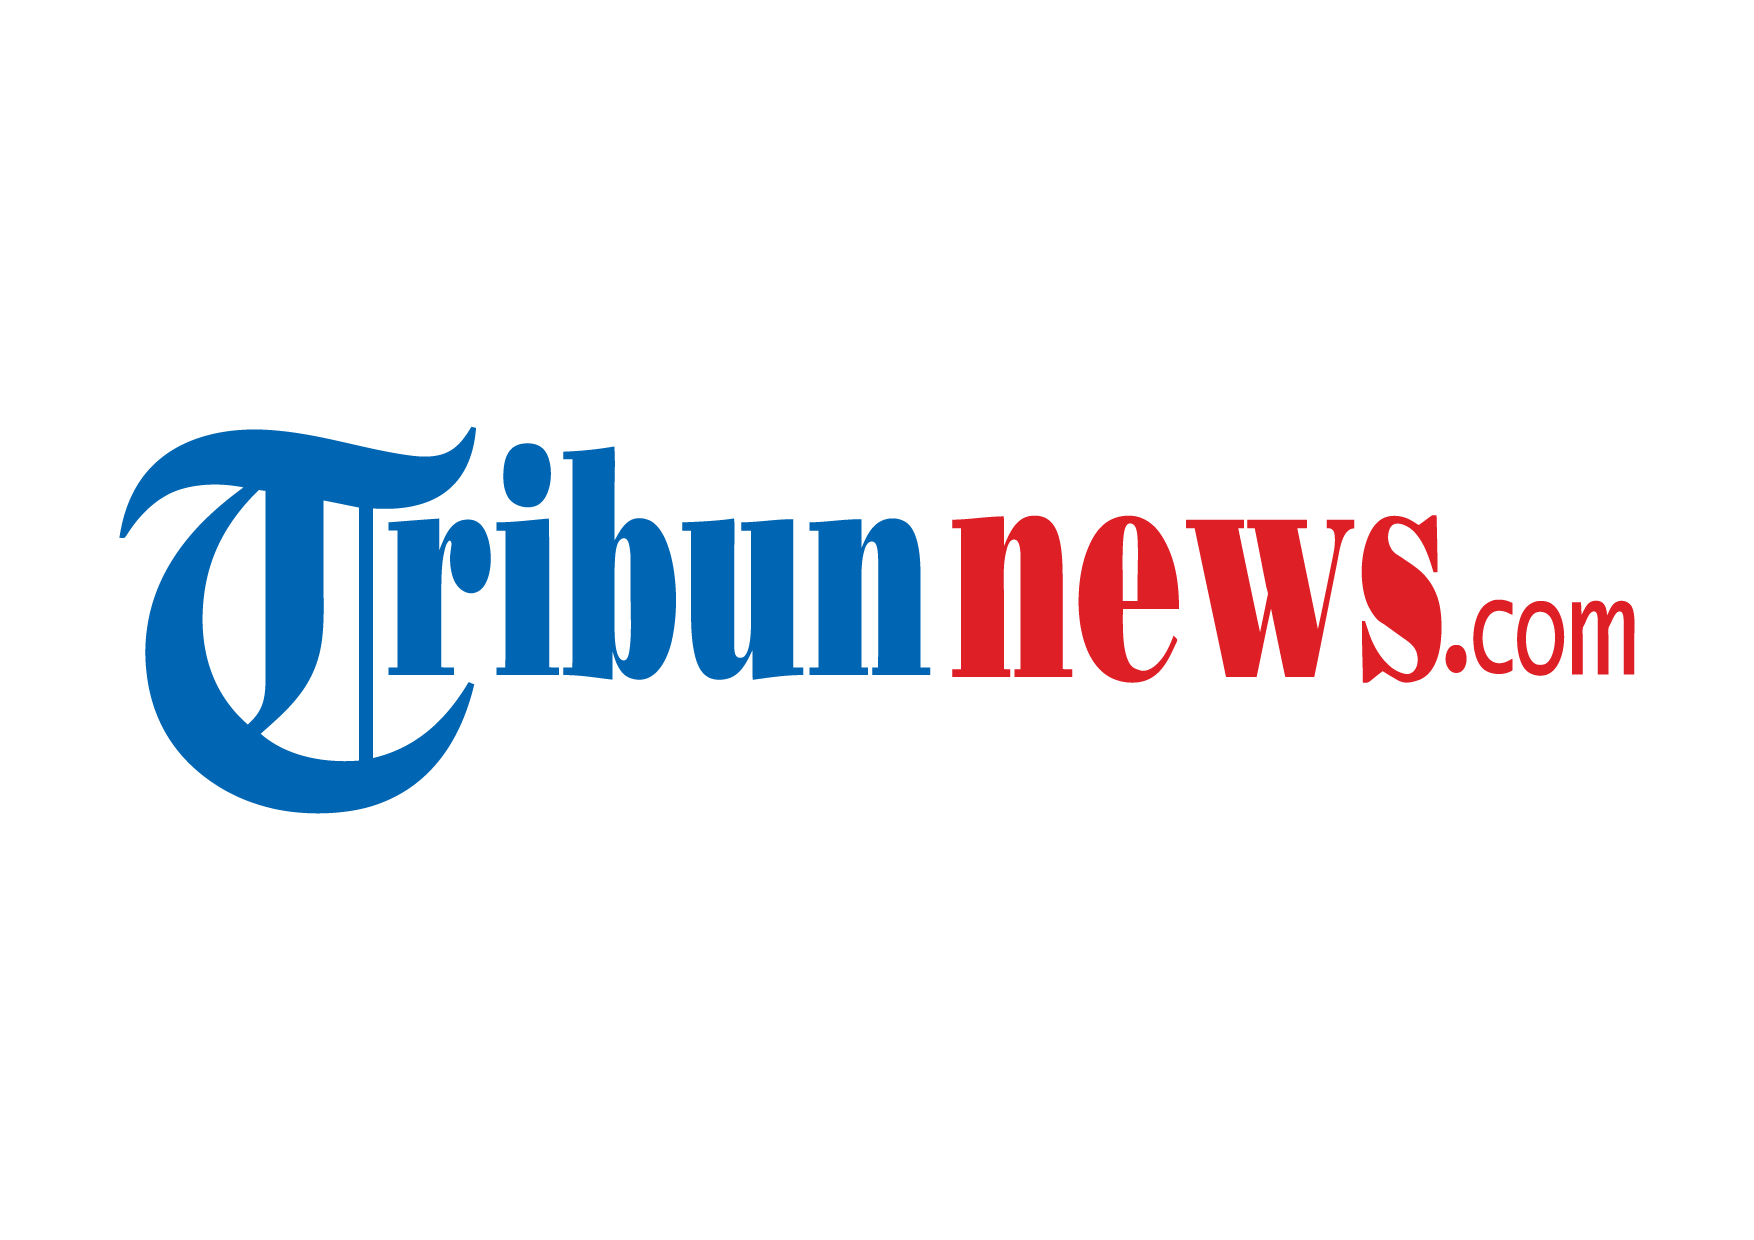 Media Tribunnews